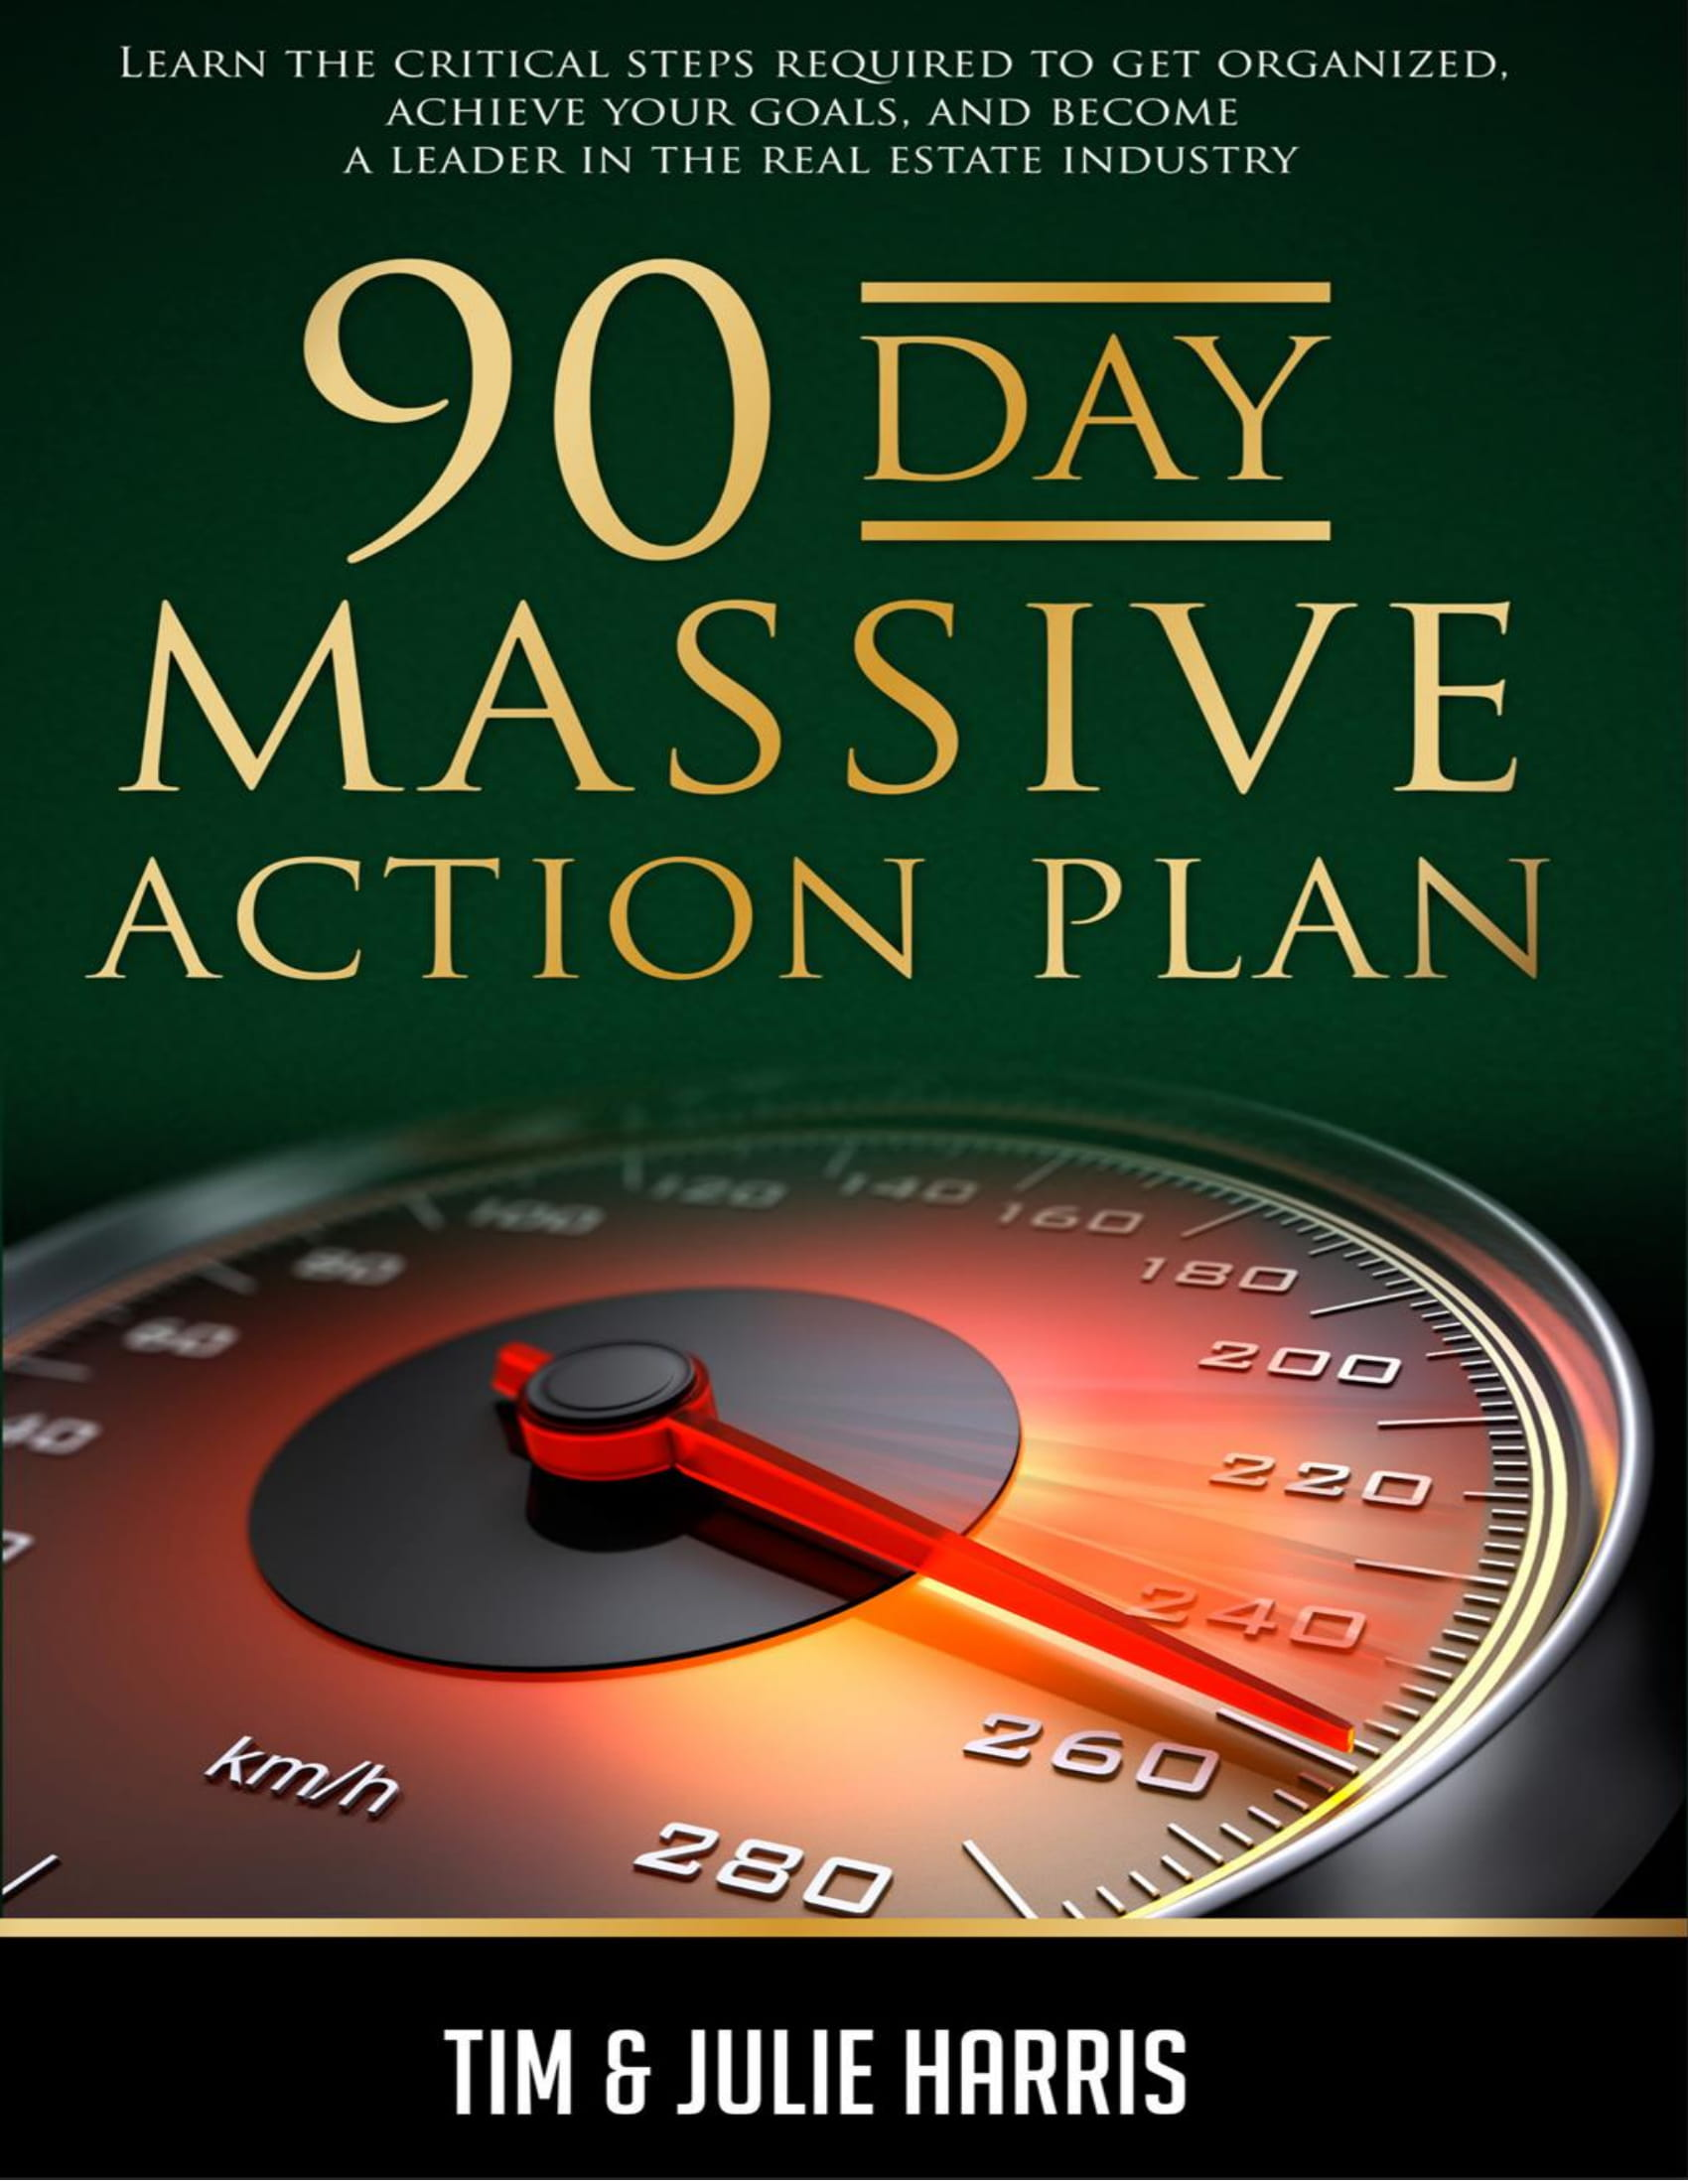 90 day massive action plan example